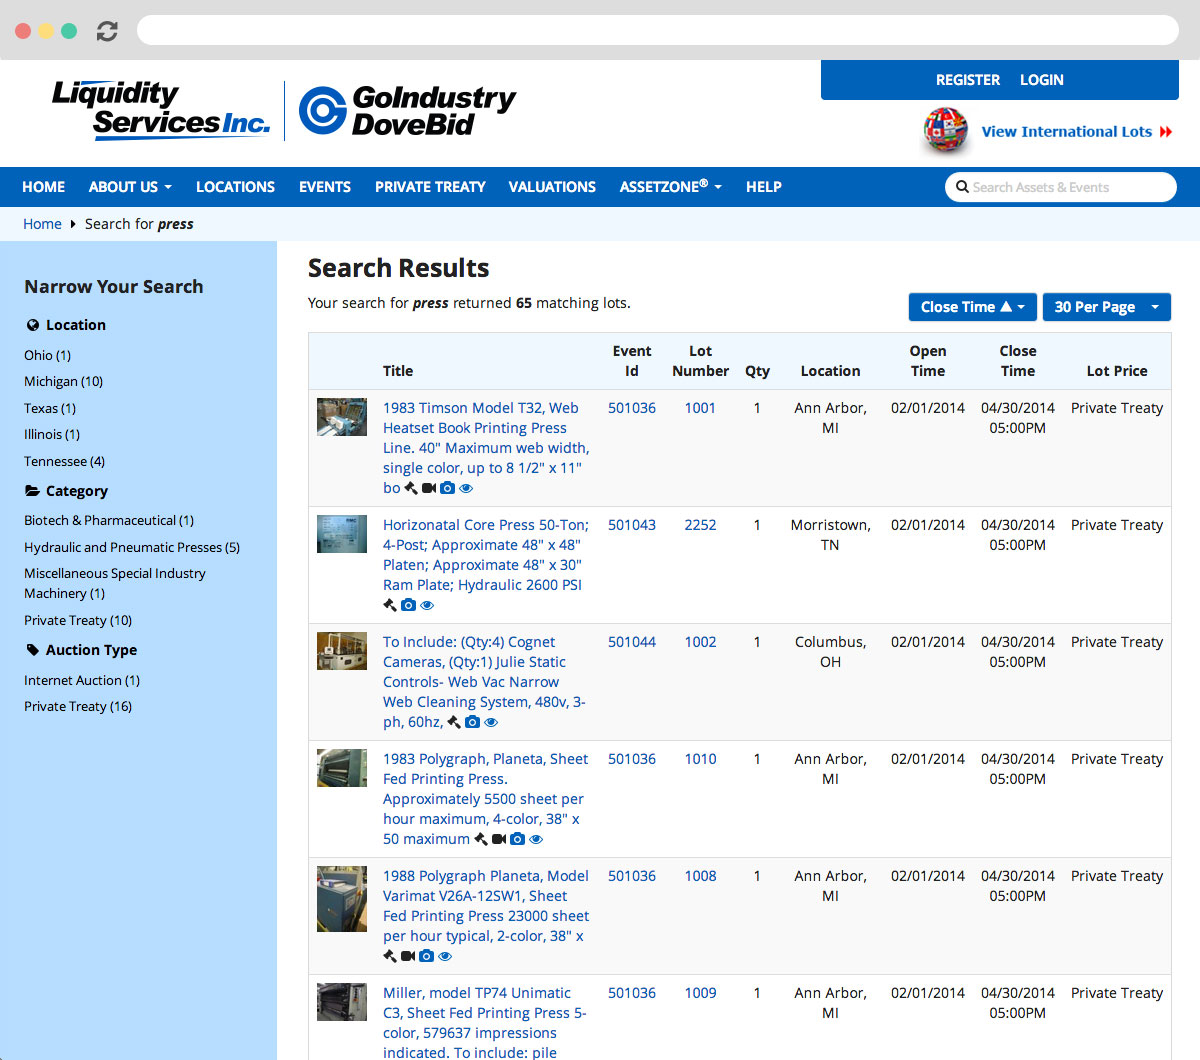 GoIndustry DoveBid Search Results